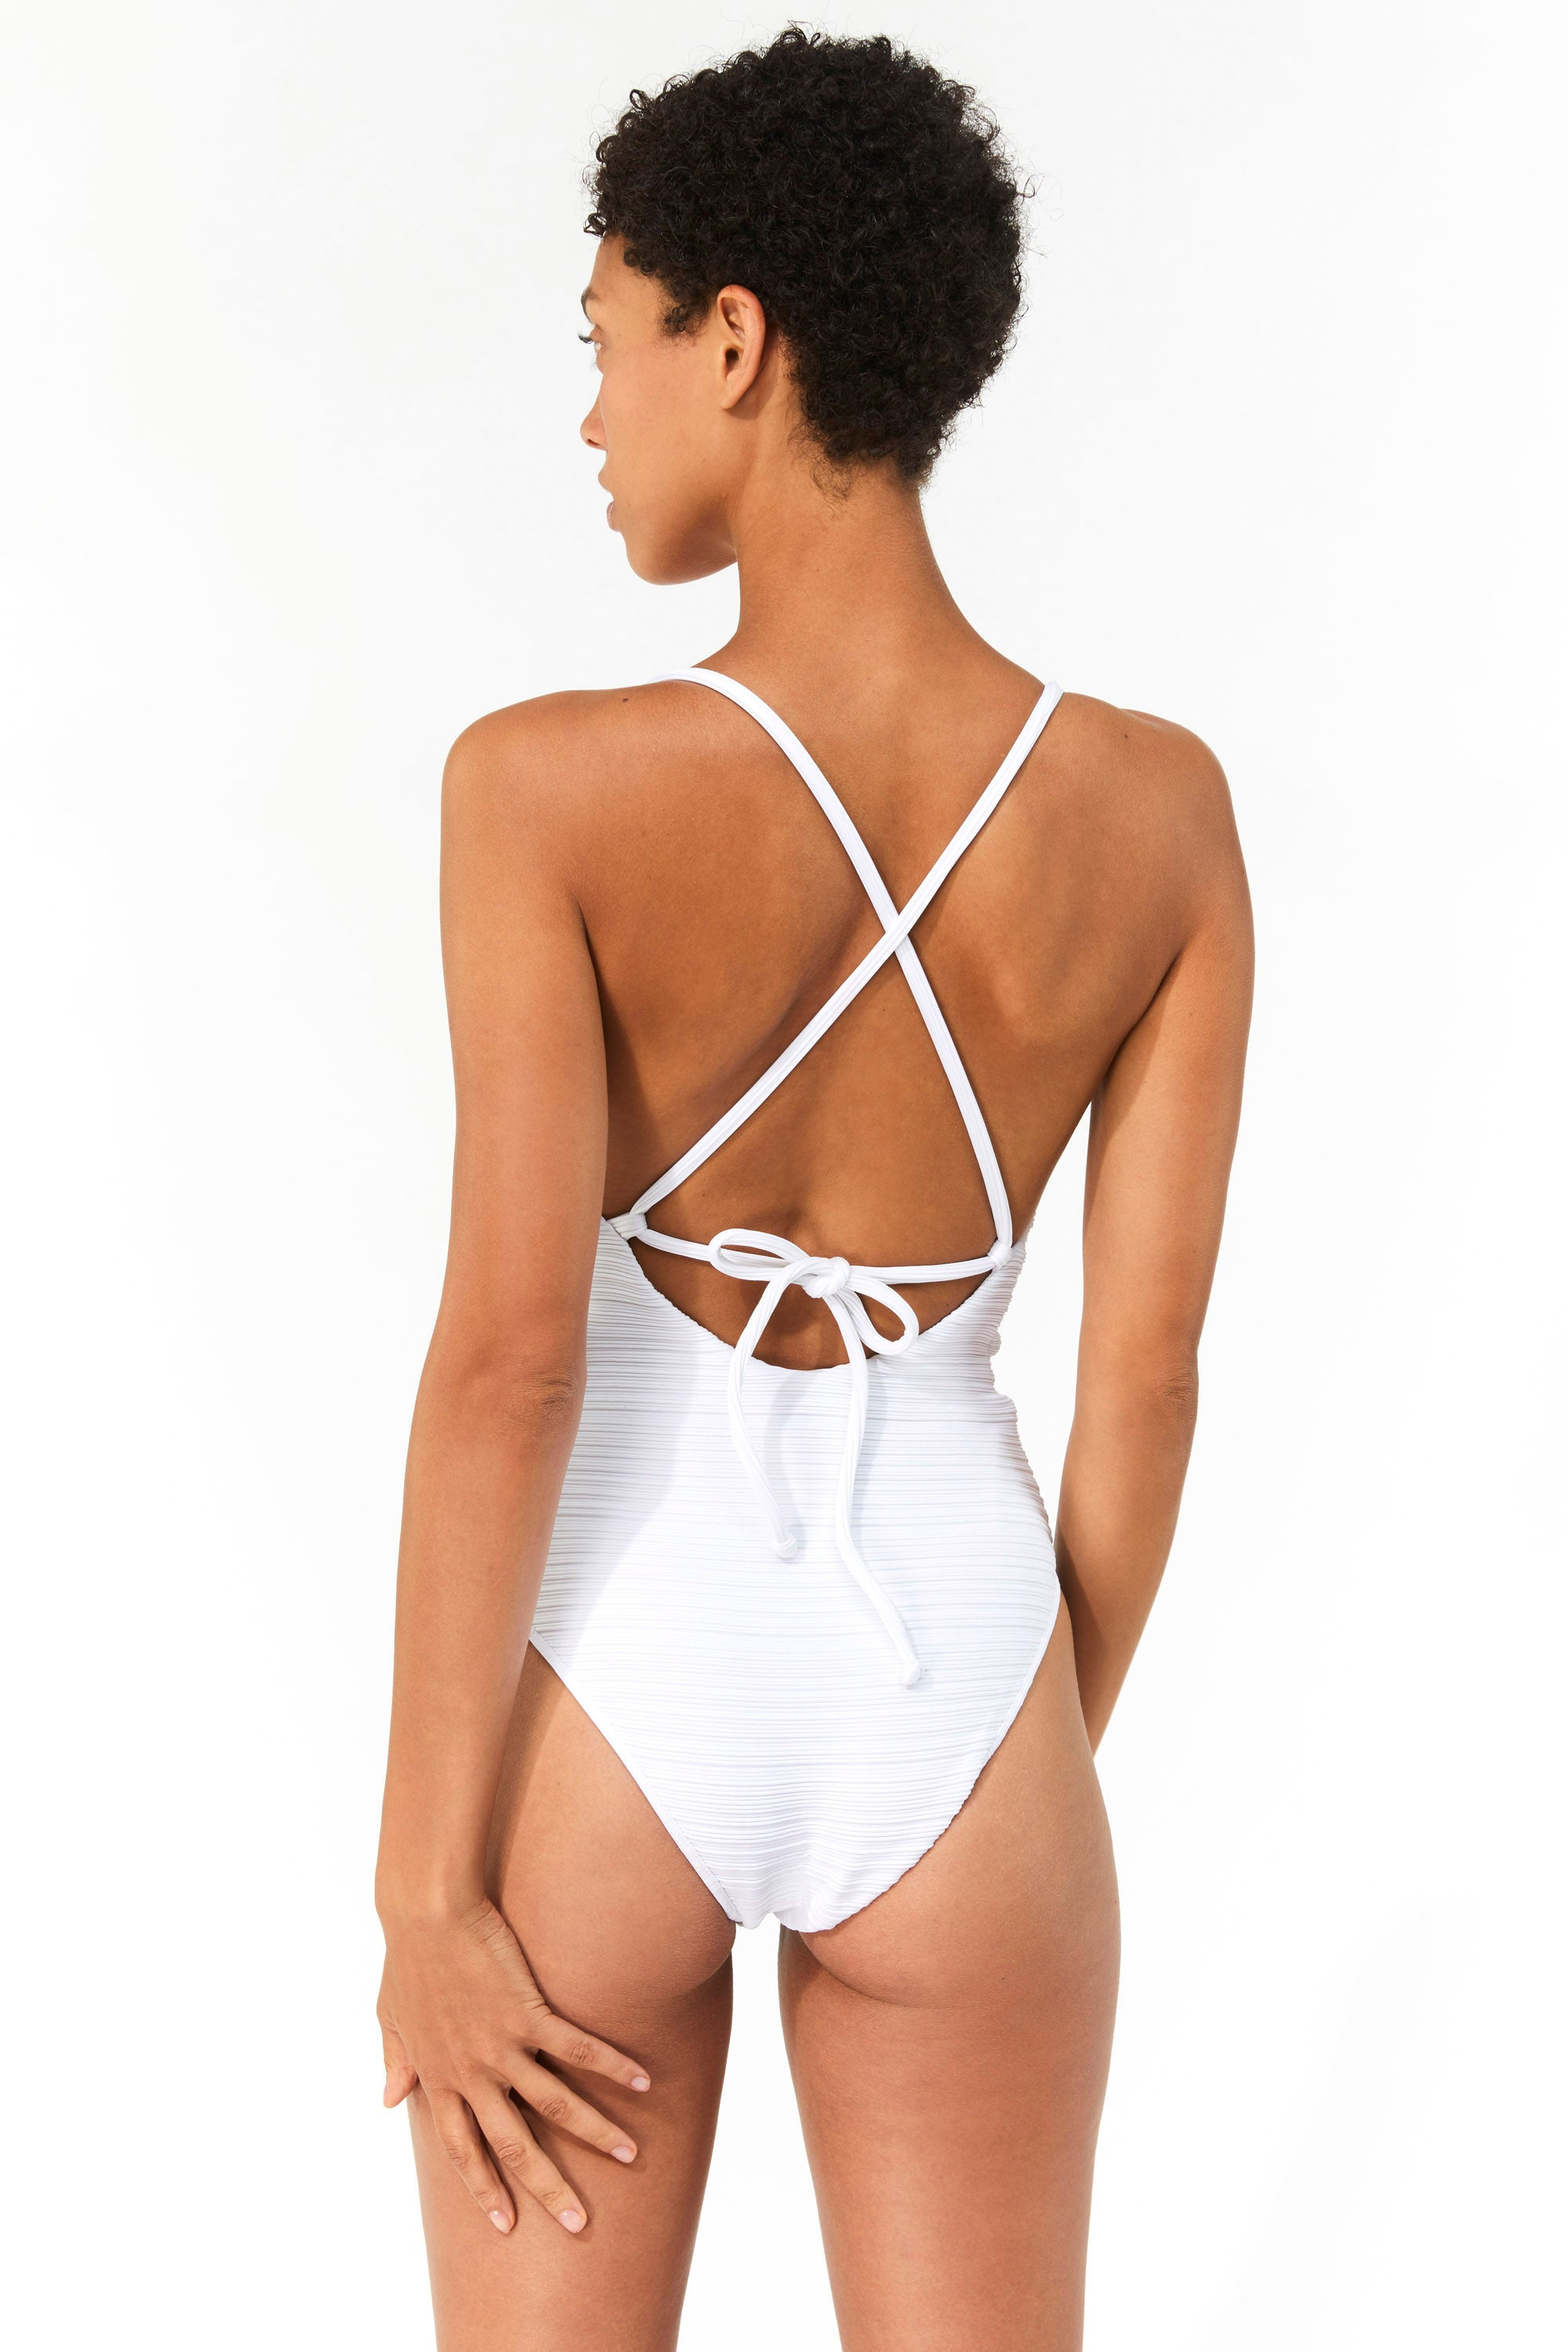 Mara Hoffman White Emma One Piece Bathing Suit in Repreve (back detail)